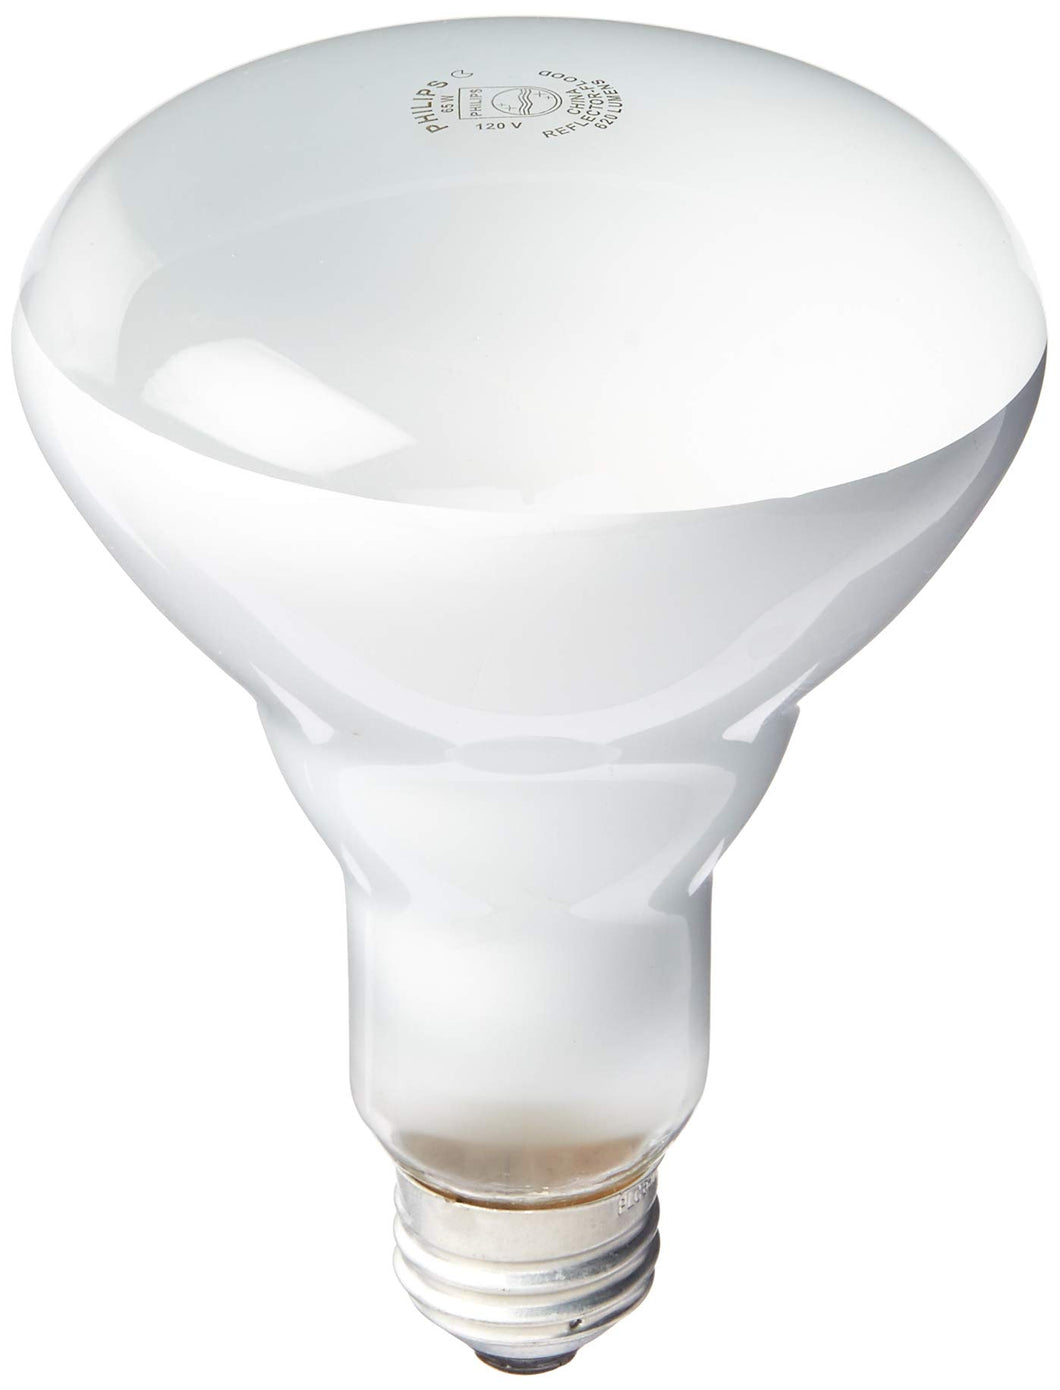 Philips 408662 Soft White 65-watt Br30 Indoor Flood Light Bulb (Pack of 4) 4 Pack